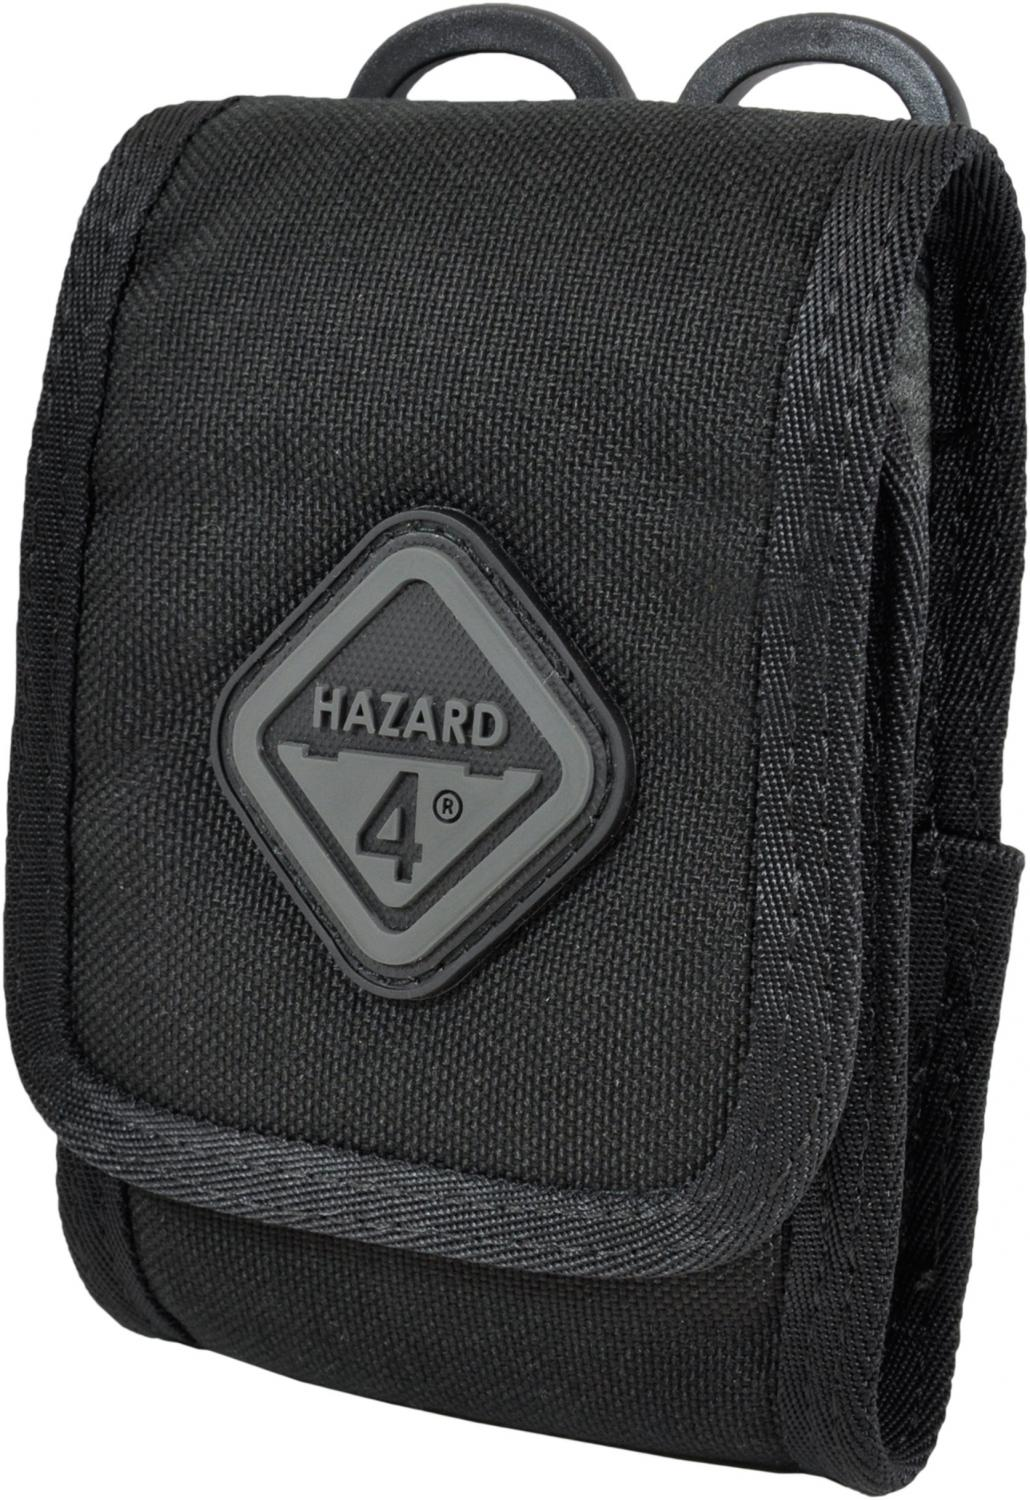 Hazard 4 Big-Koala Smartphone and Gear Case, Black